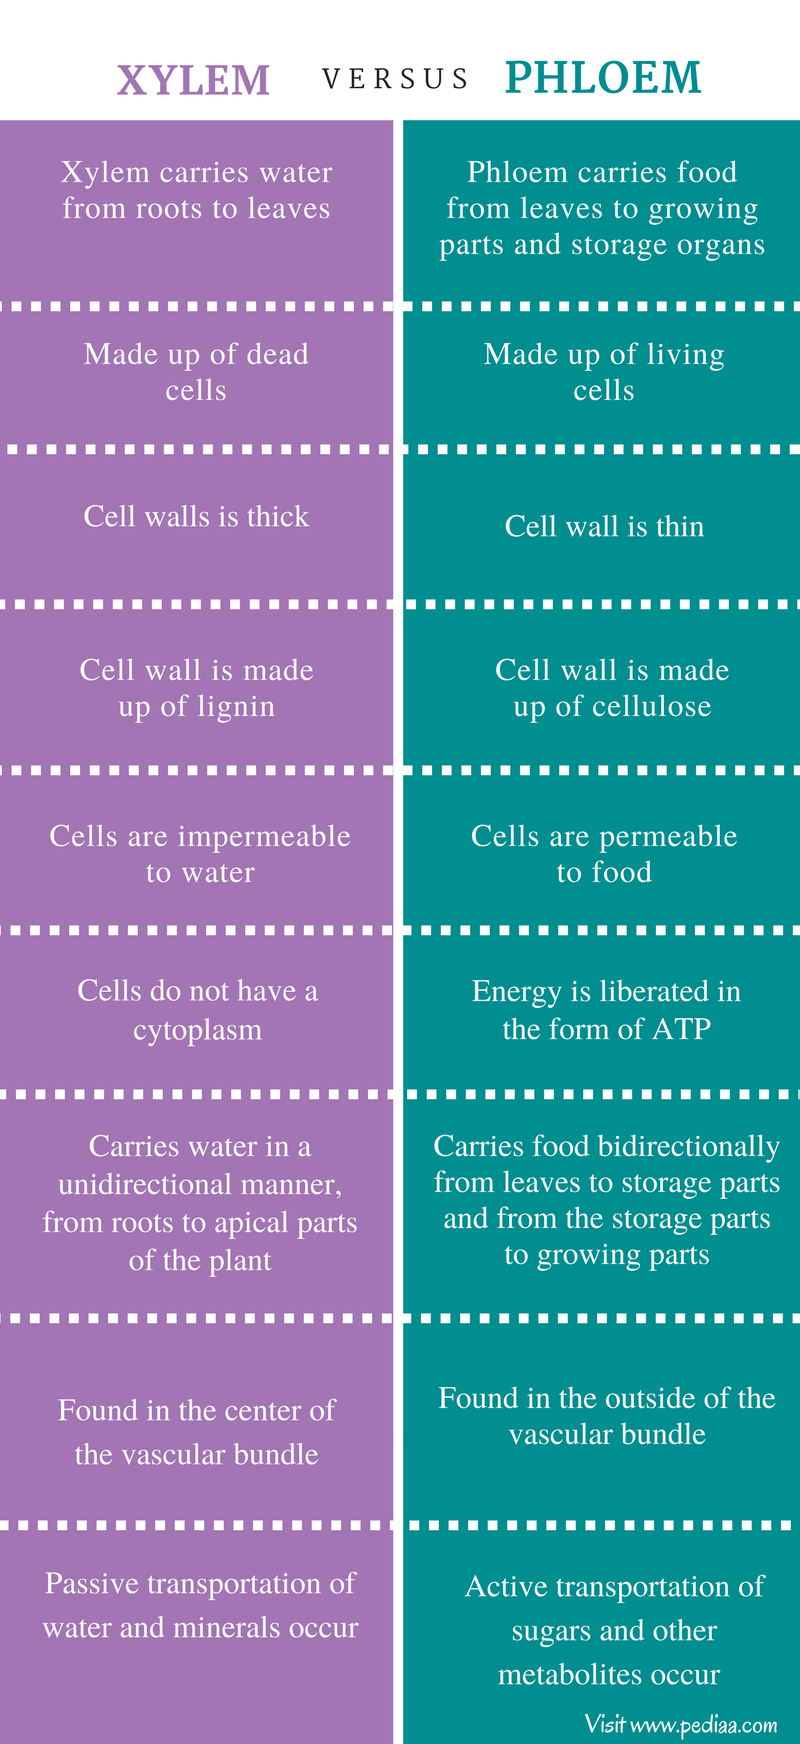 Difference Between Xylem and Phloem - Comparison Summary ... Xylem Tissue Facts